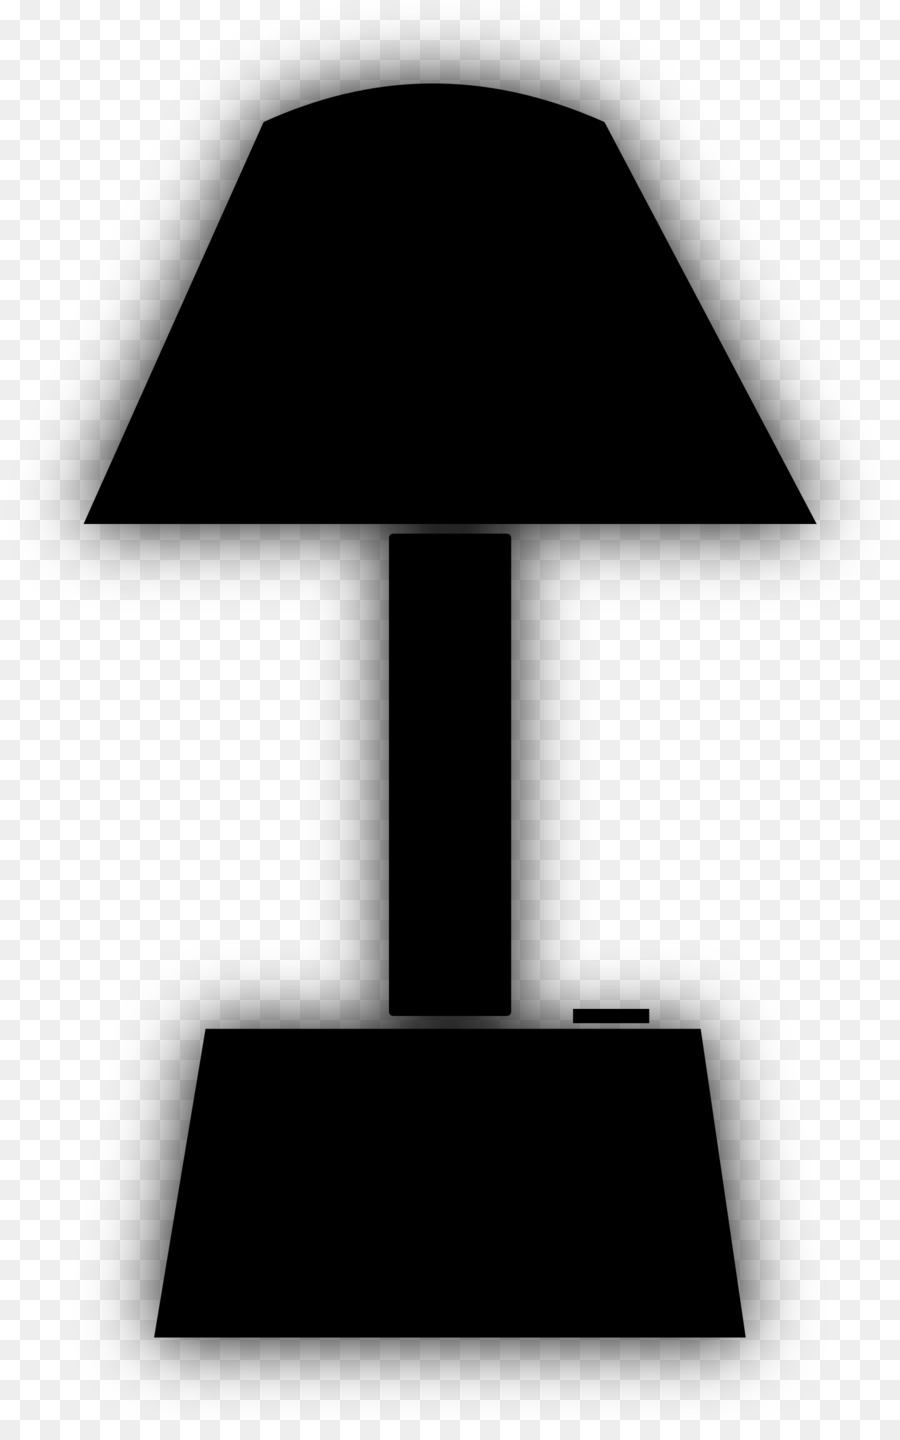 Clip On Bed Lamp Light Lamp Clip Art Bed Png Download 1520 2400 Free